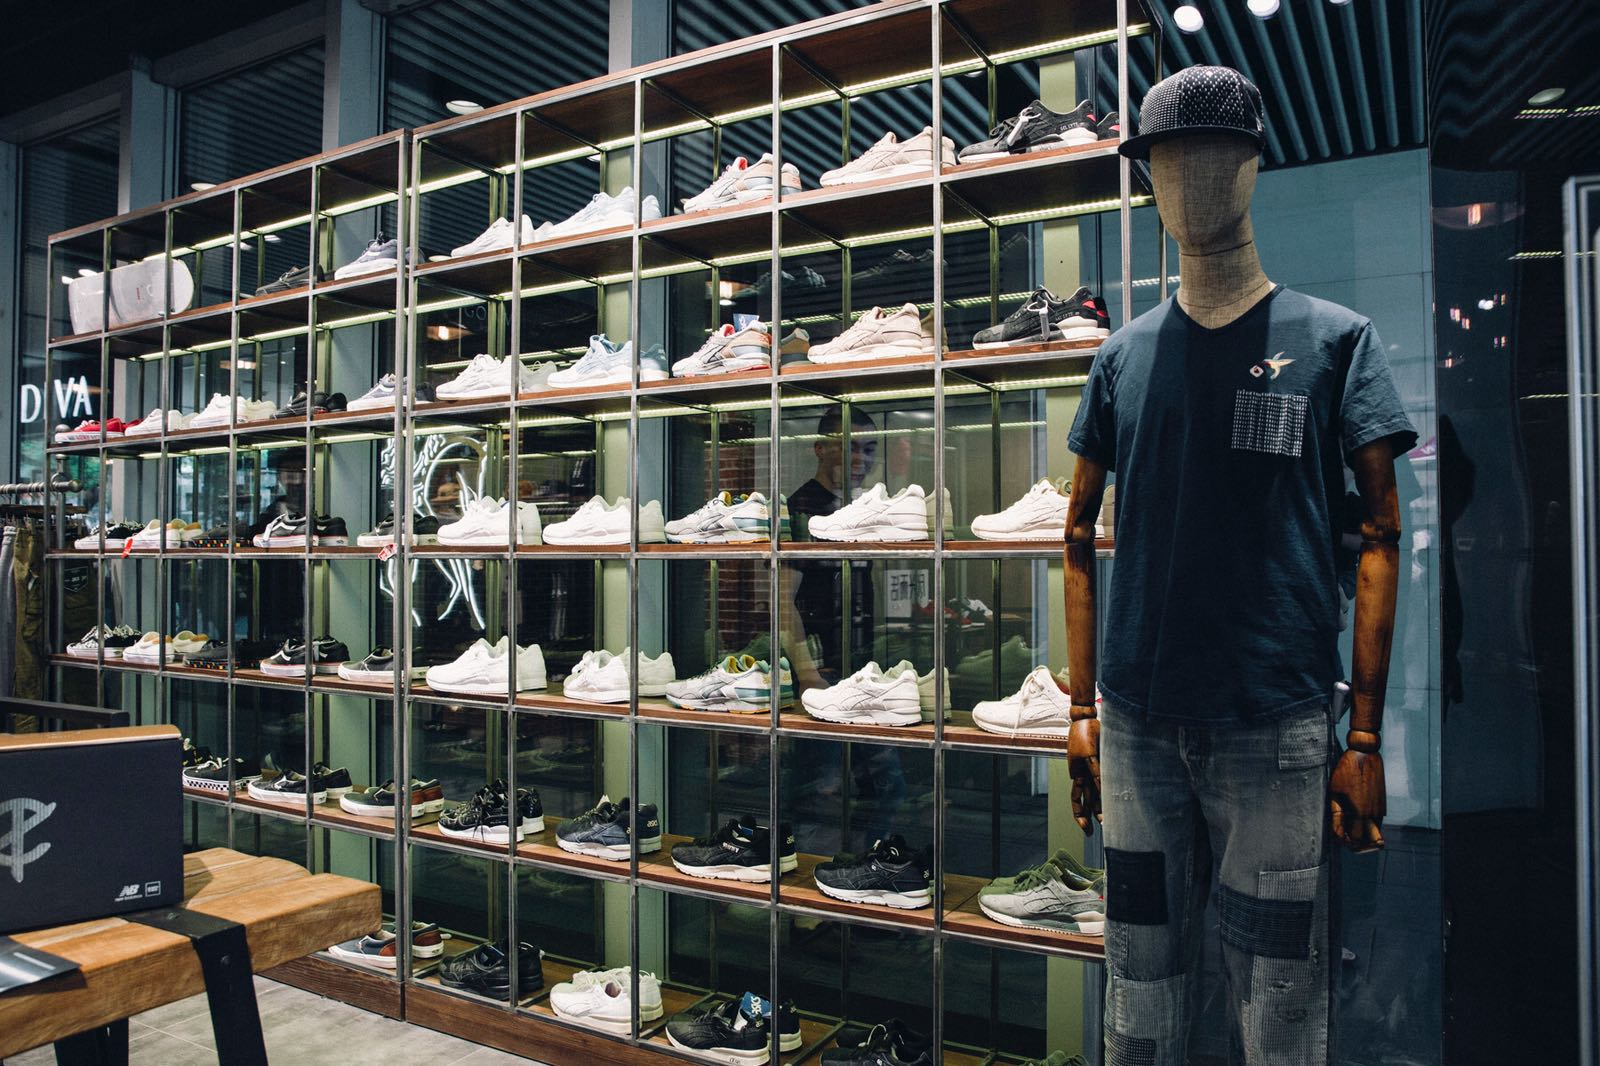 New Balance x Popcorn General Store 北京「247 期间限定潮流便利店」现场回顾 -new-balance-x-popcorn-general-store-247-pop-up-beijing-22